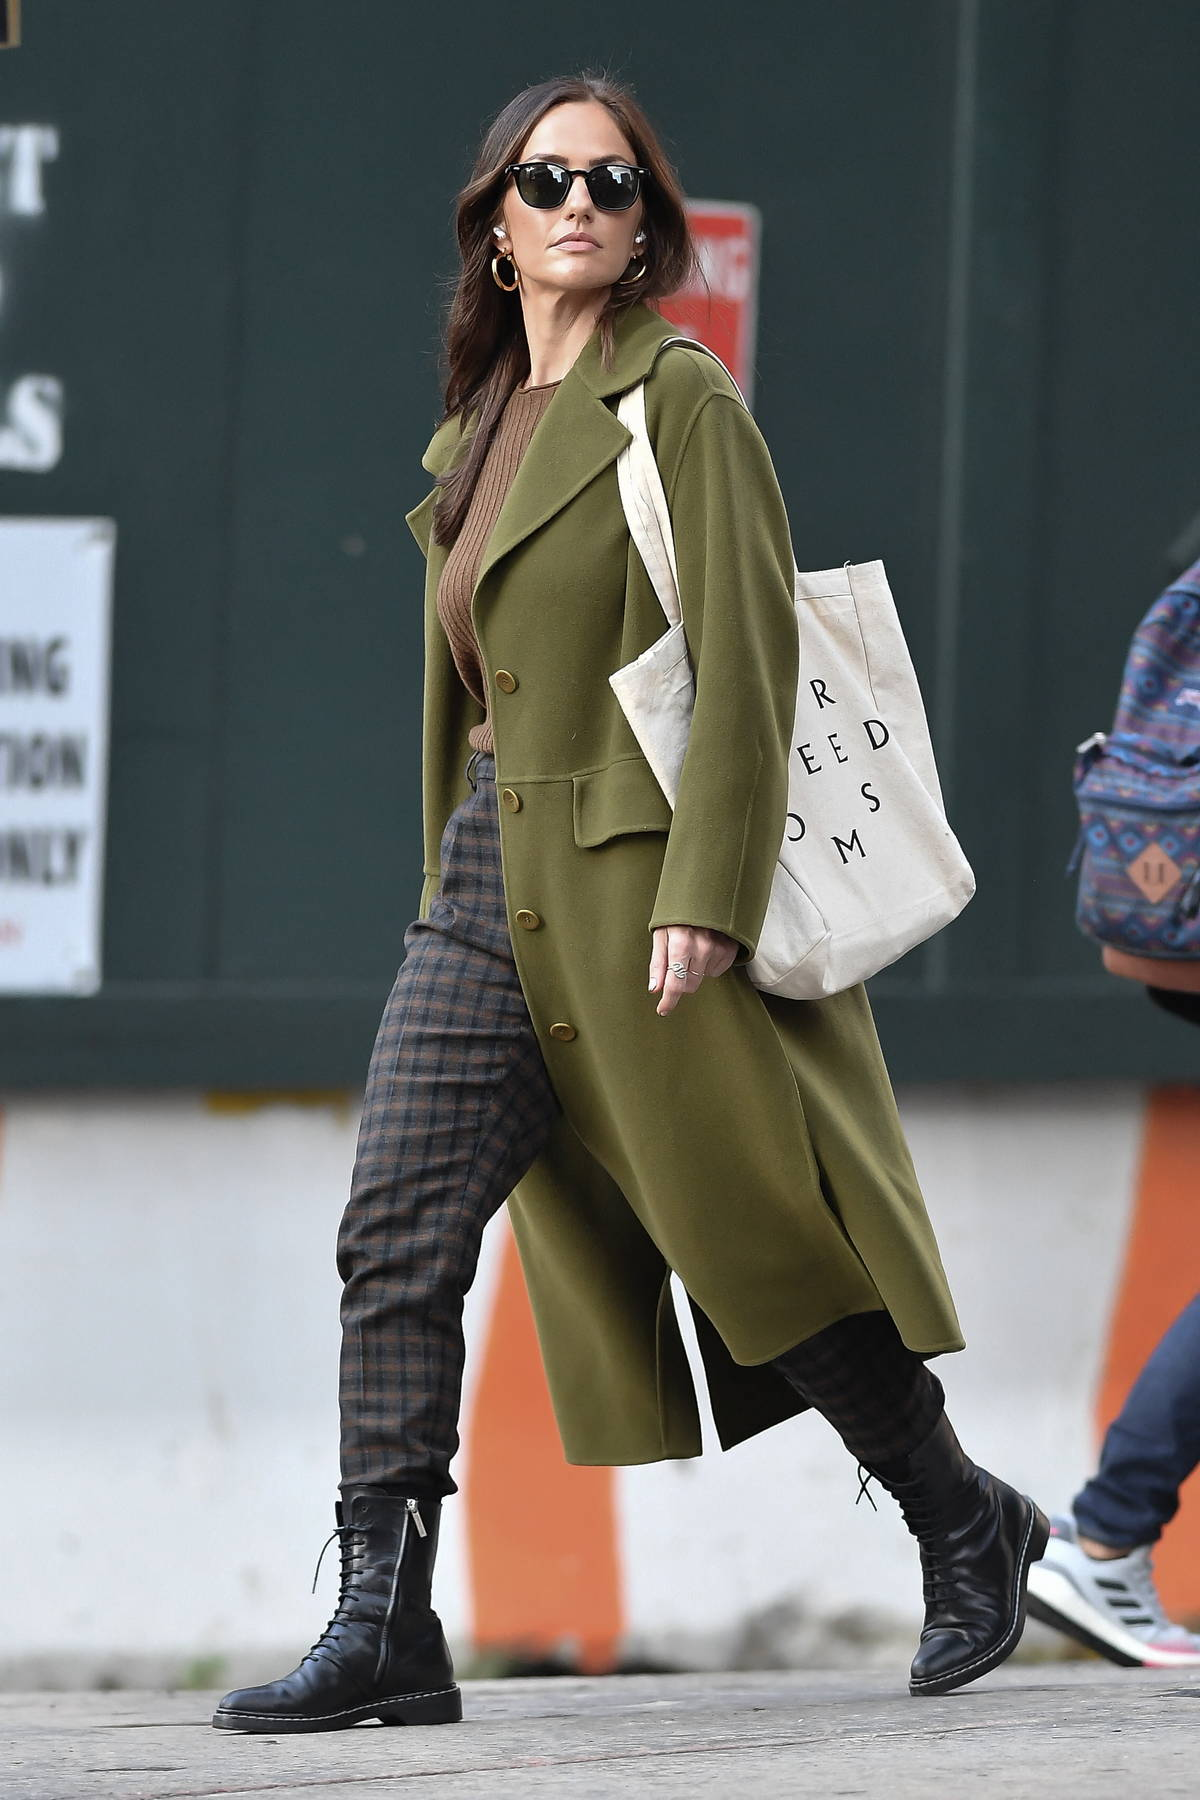 Minka Kelly looks stylish in an olive green trench coat while out running errands in New York City